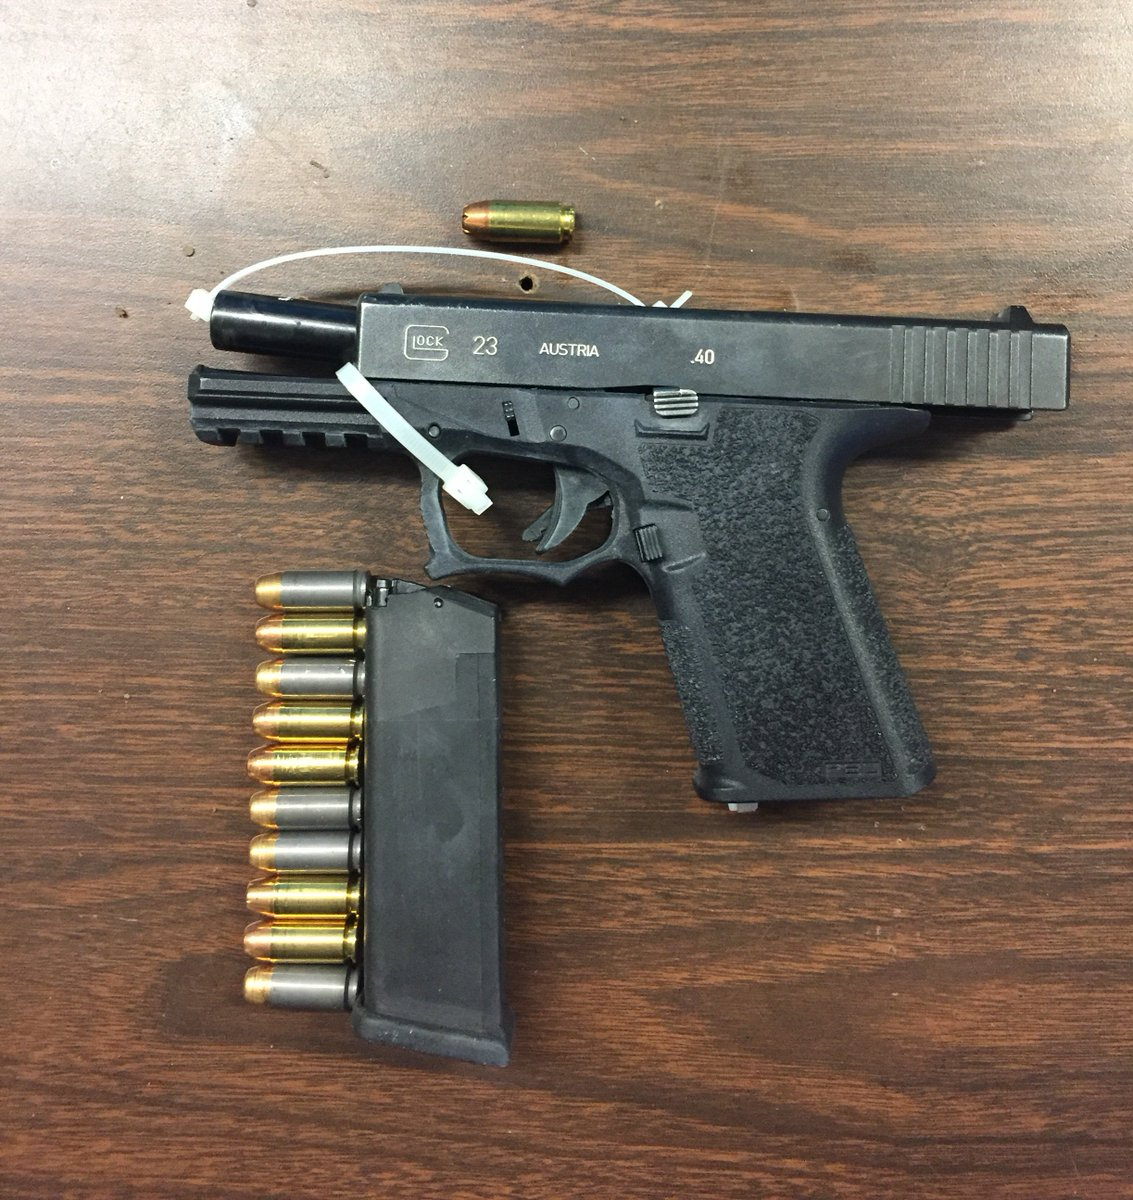 The 120th Precinct's Twitter feed said this gun was found in Jake Pankey's possession after a violent dispute in which he punched a woman and threatened to kill her.